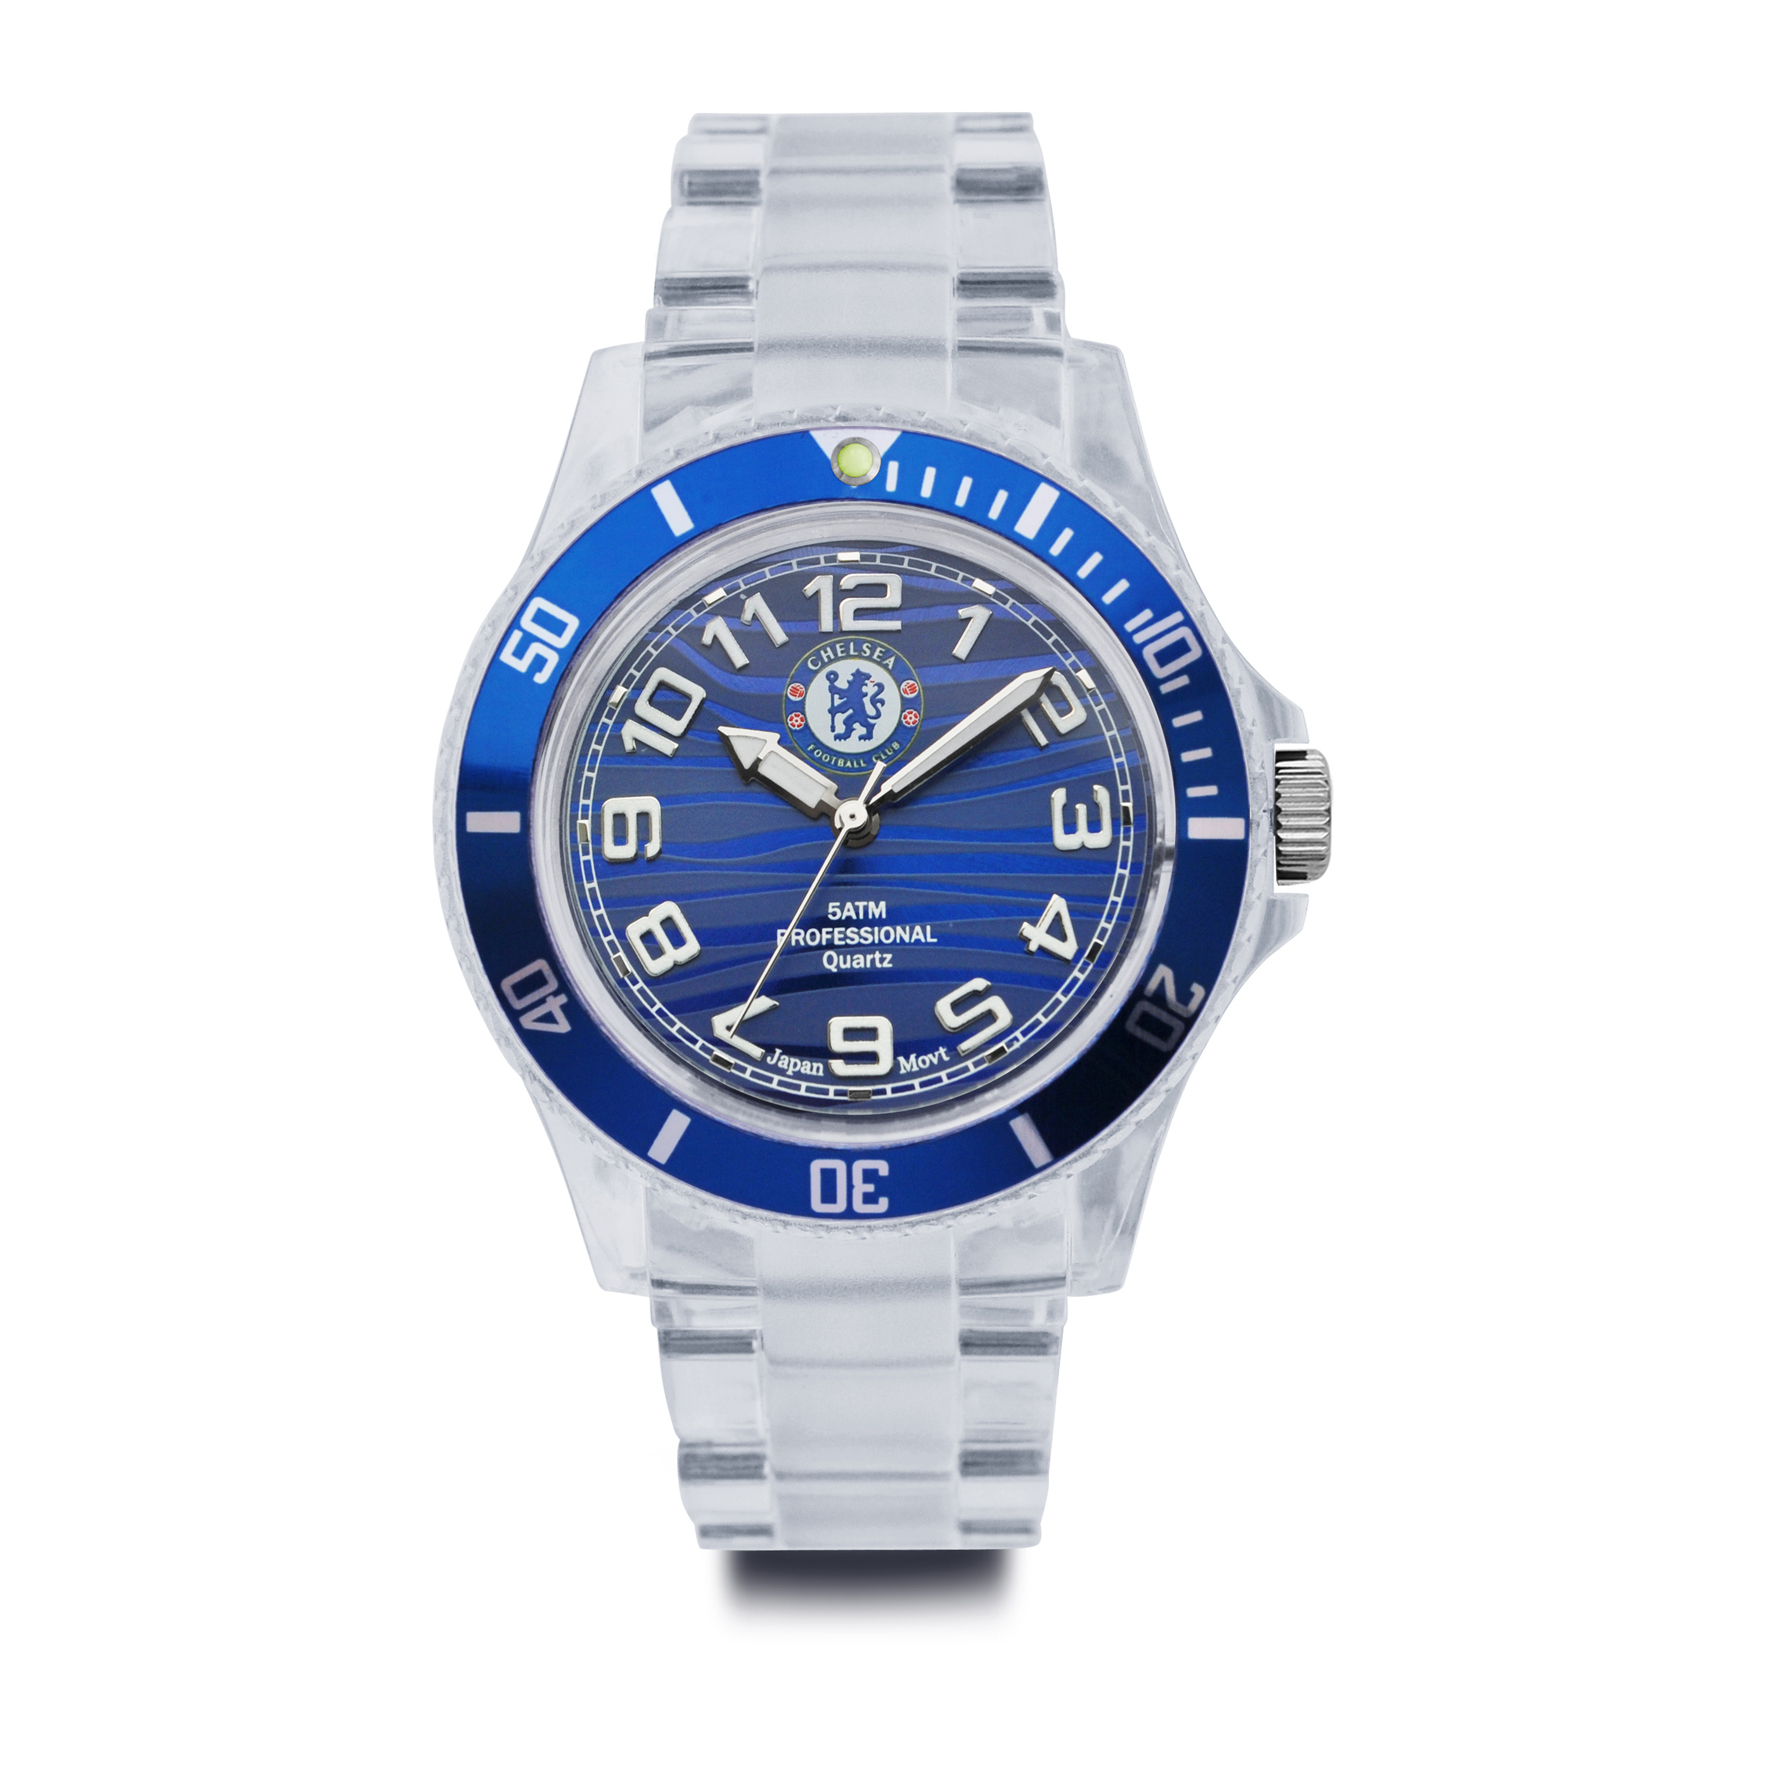 Chelsea Clear Plastic Bracelet Strap Analogue Watch